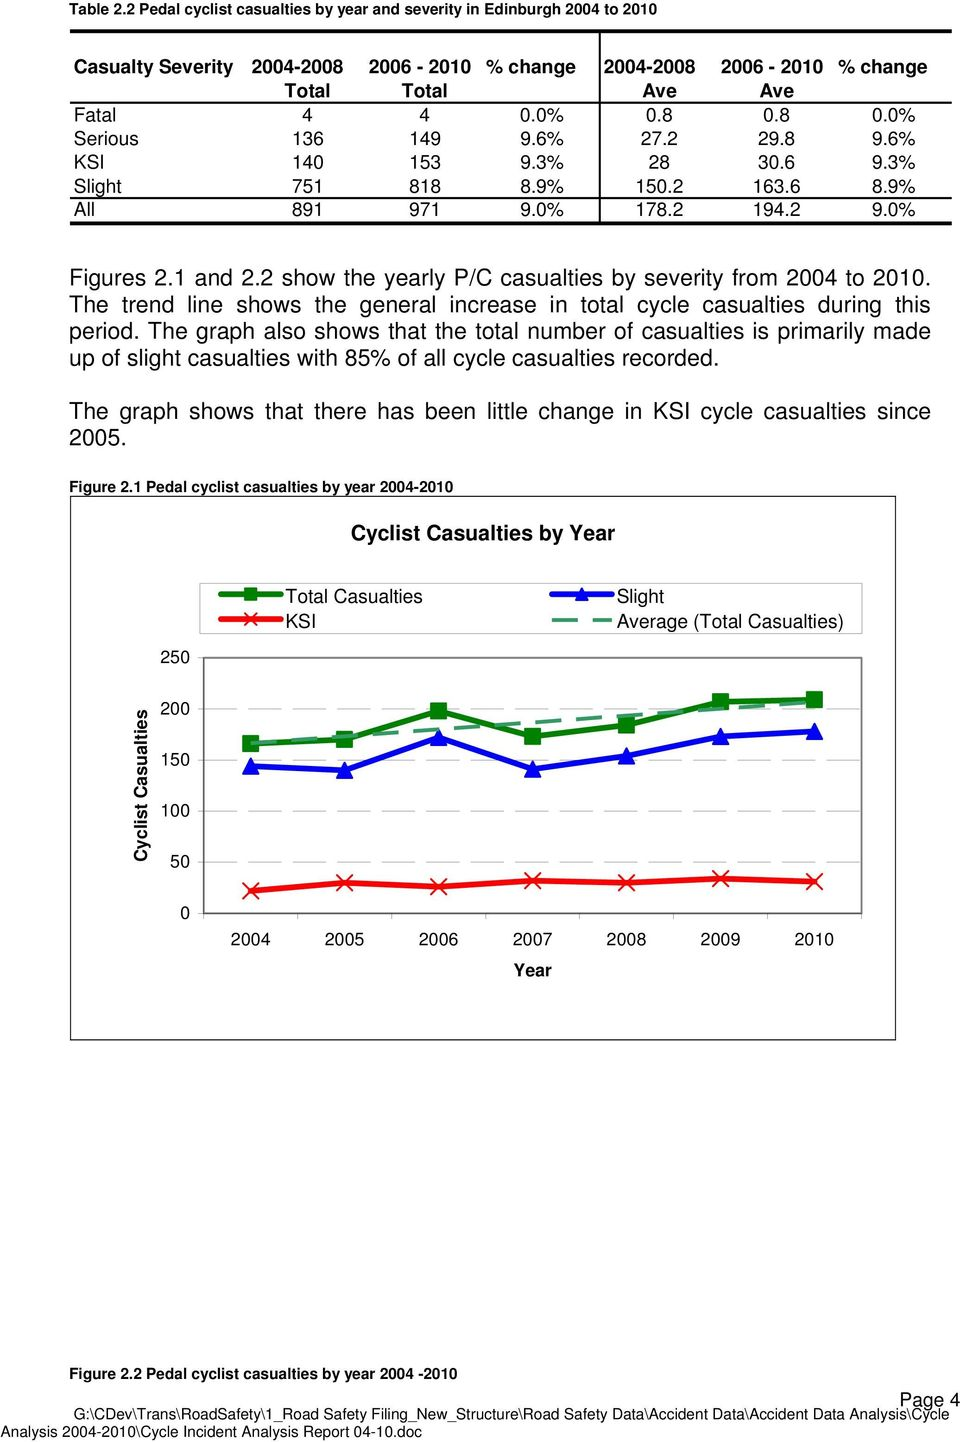 2 show the yearly P/C casualties by severity from 2004 to 2010. The trend line shows the general increase in total cycle casualties during this period.